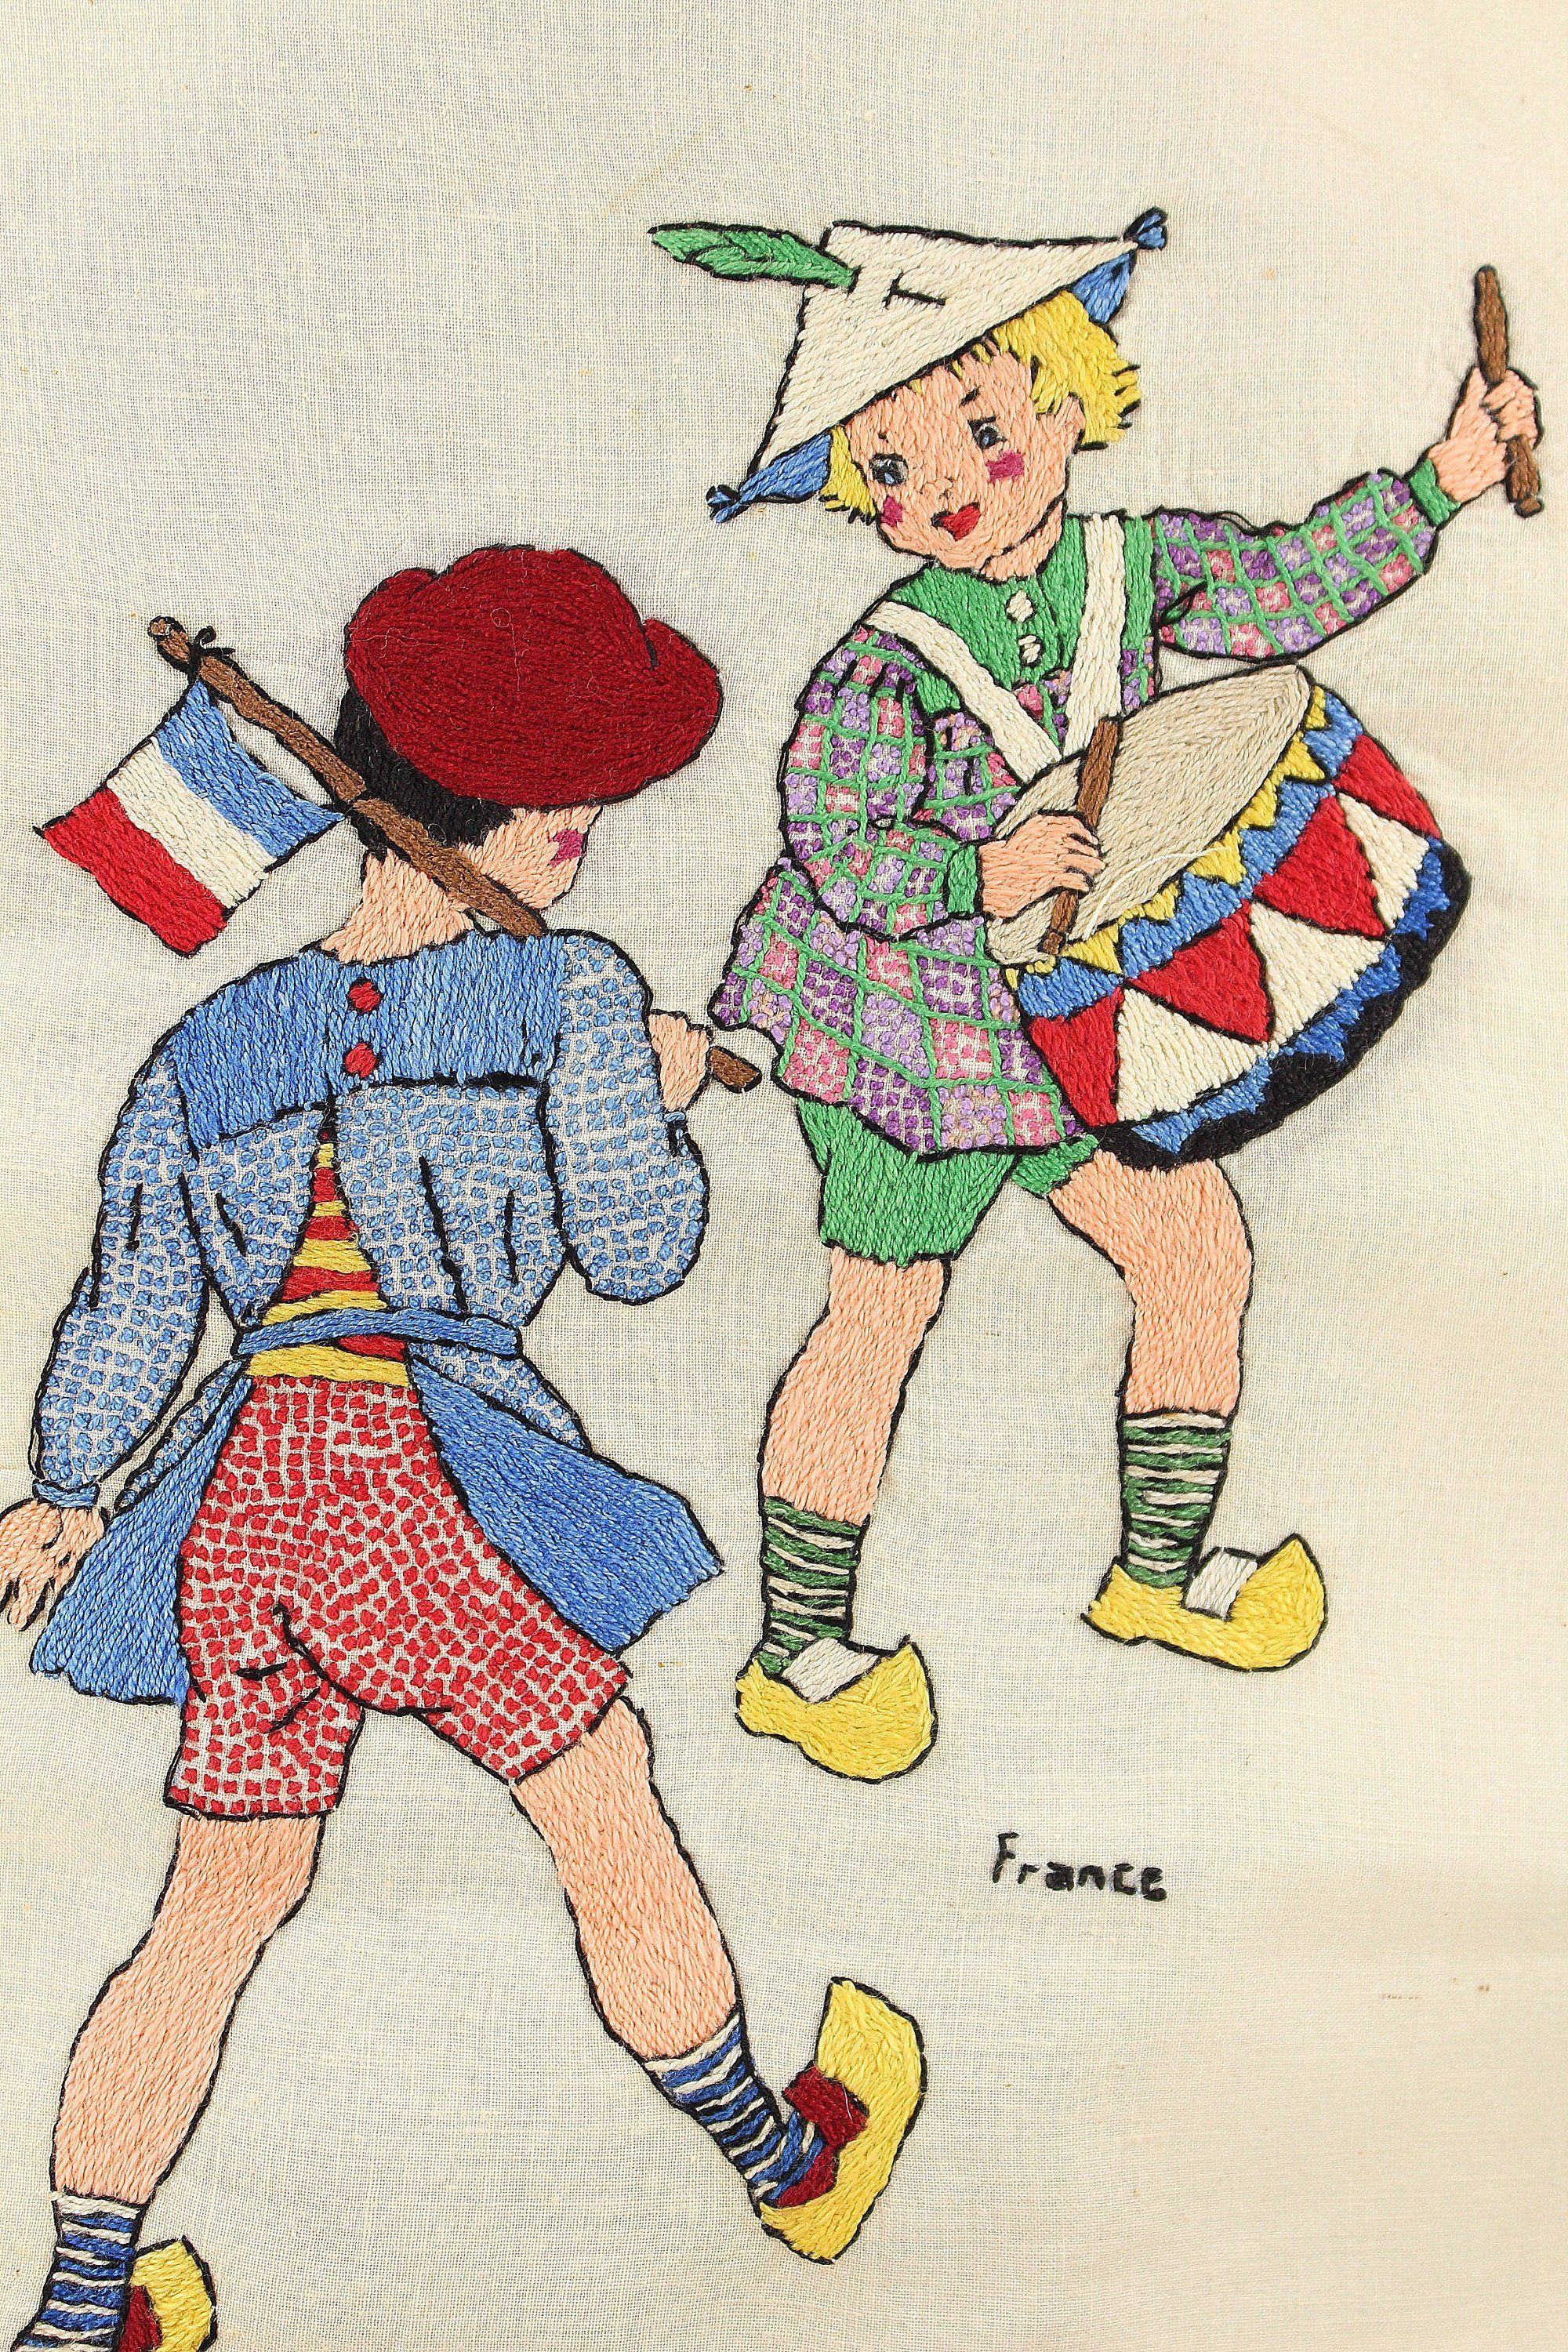 Vintage Hand Embroidery French Children With Flag And